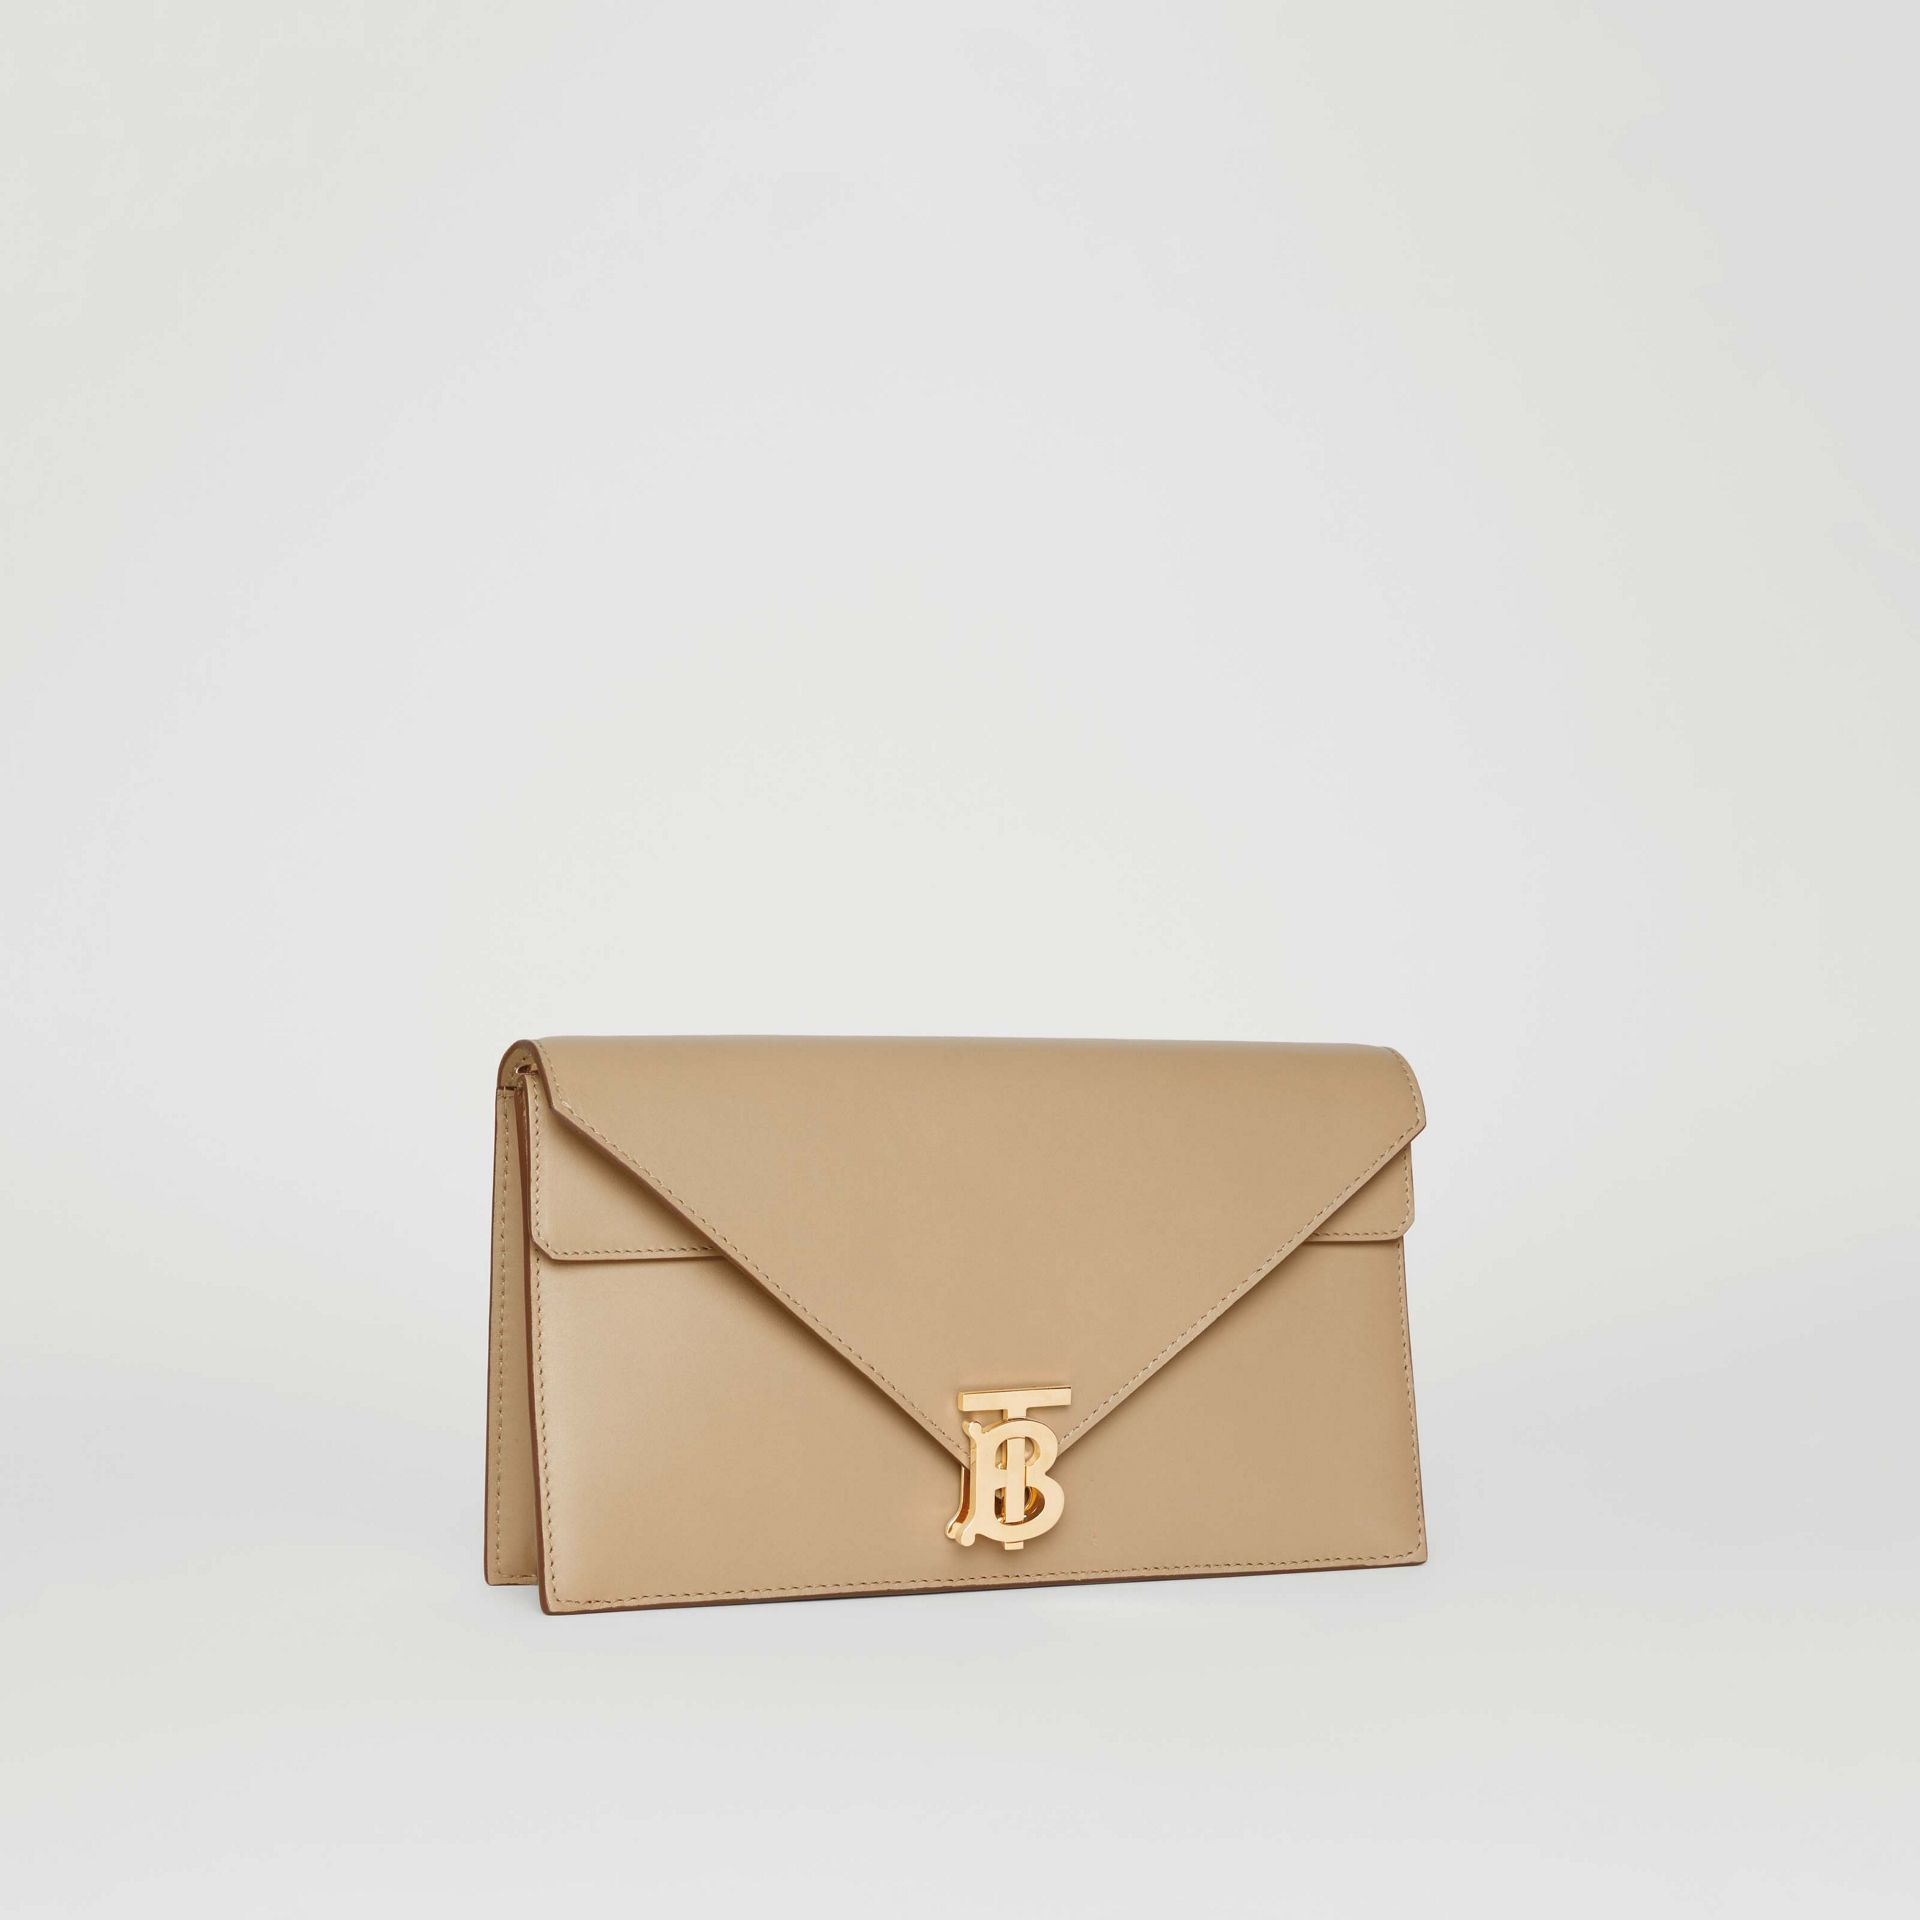 Small Leather TB Envelope Clutch in Honey - Women | Burberry United Kingdom - gallery image 6